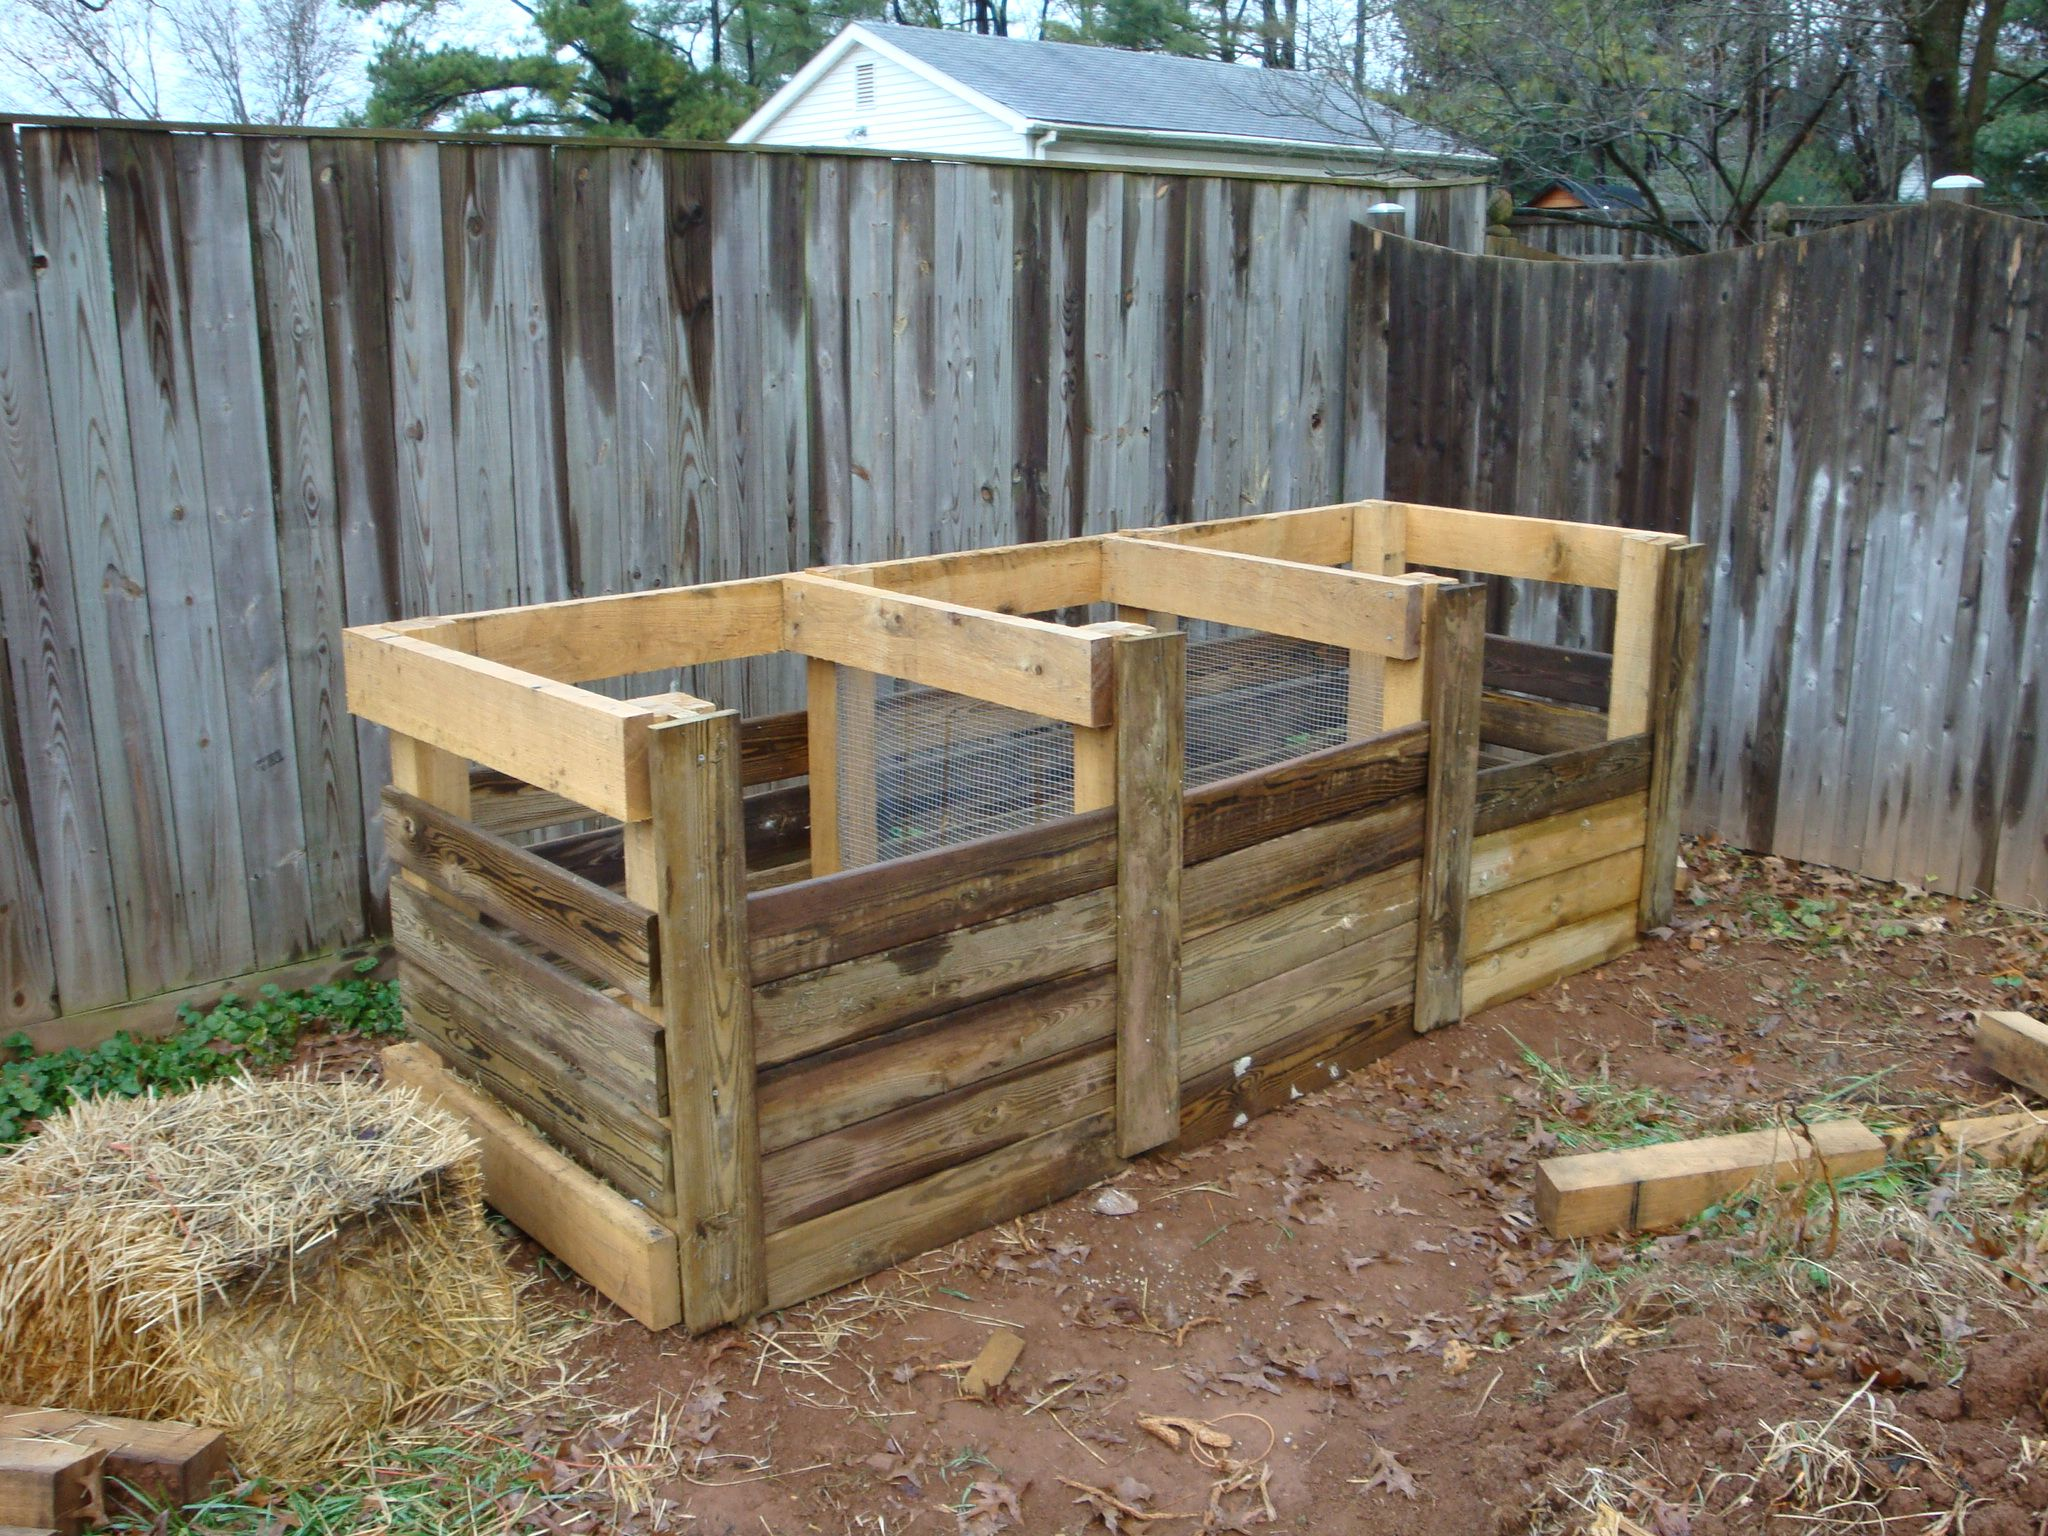 Beautiful Great Compost Bin Plans. With Slight Alterations This Will Work Great!